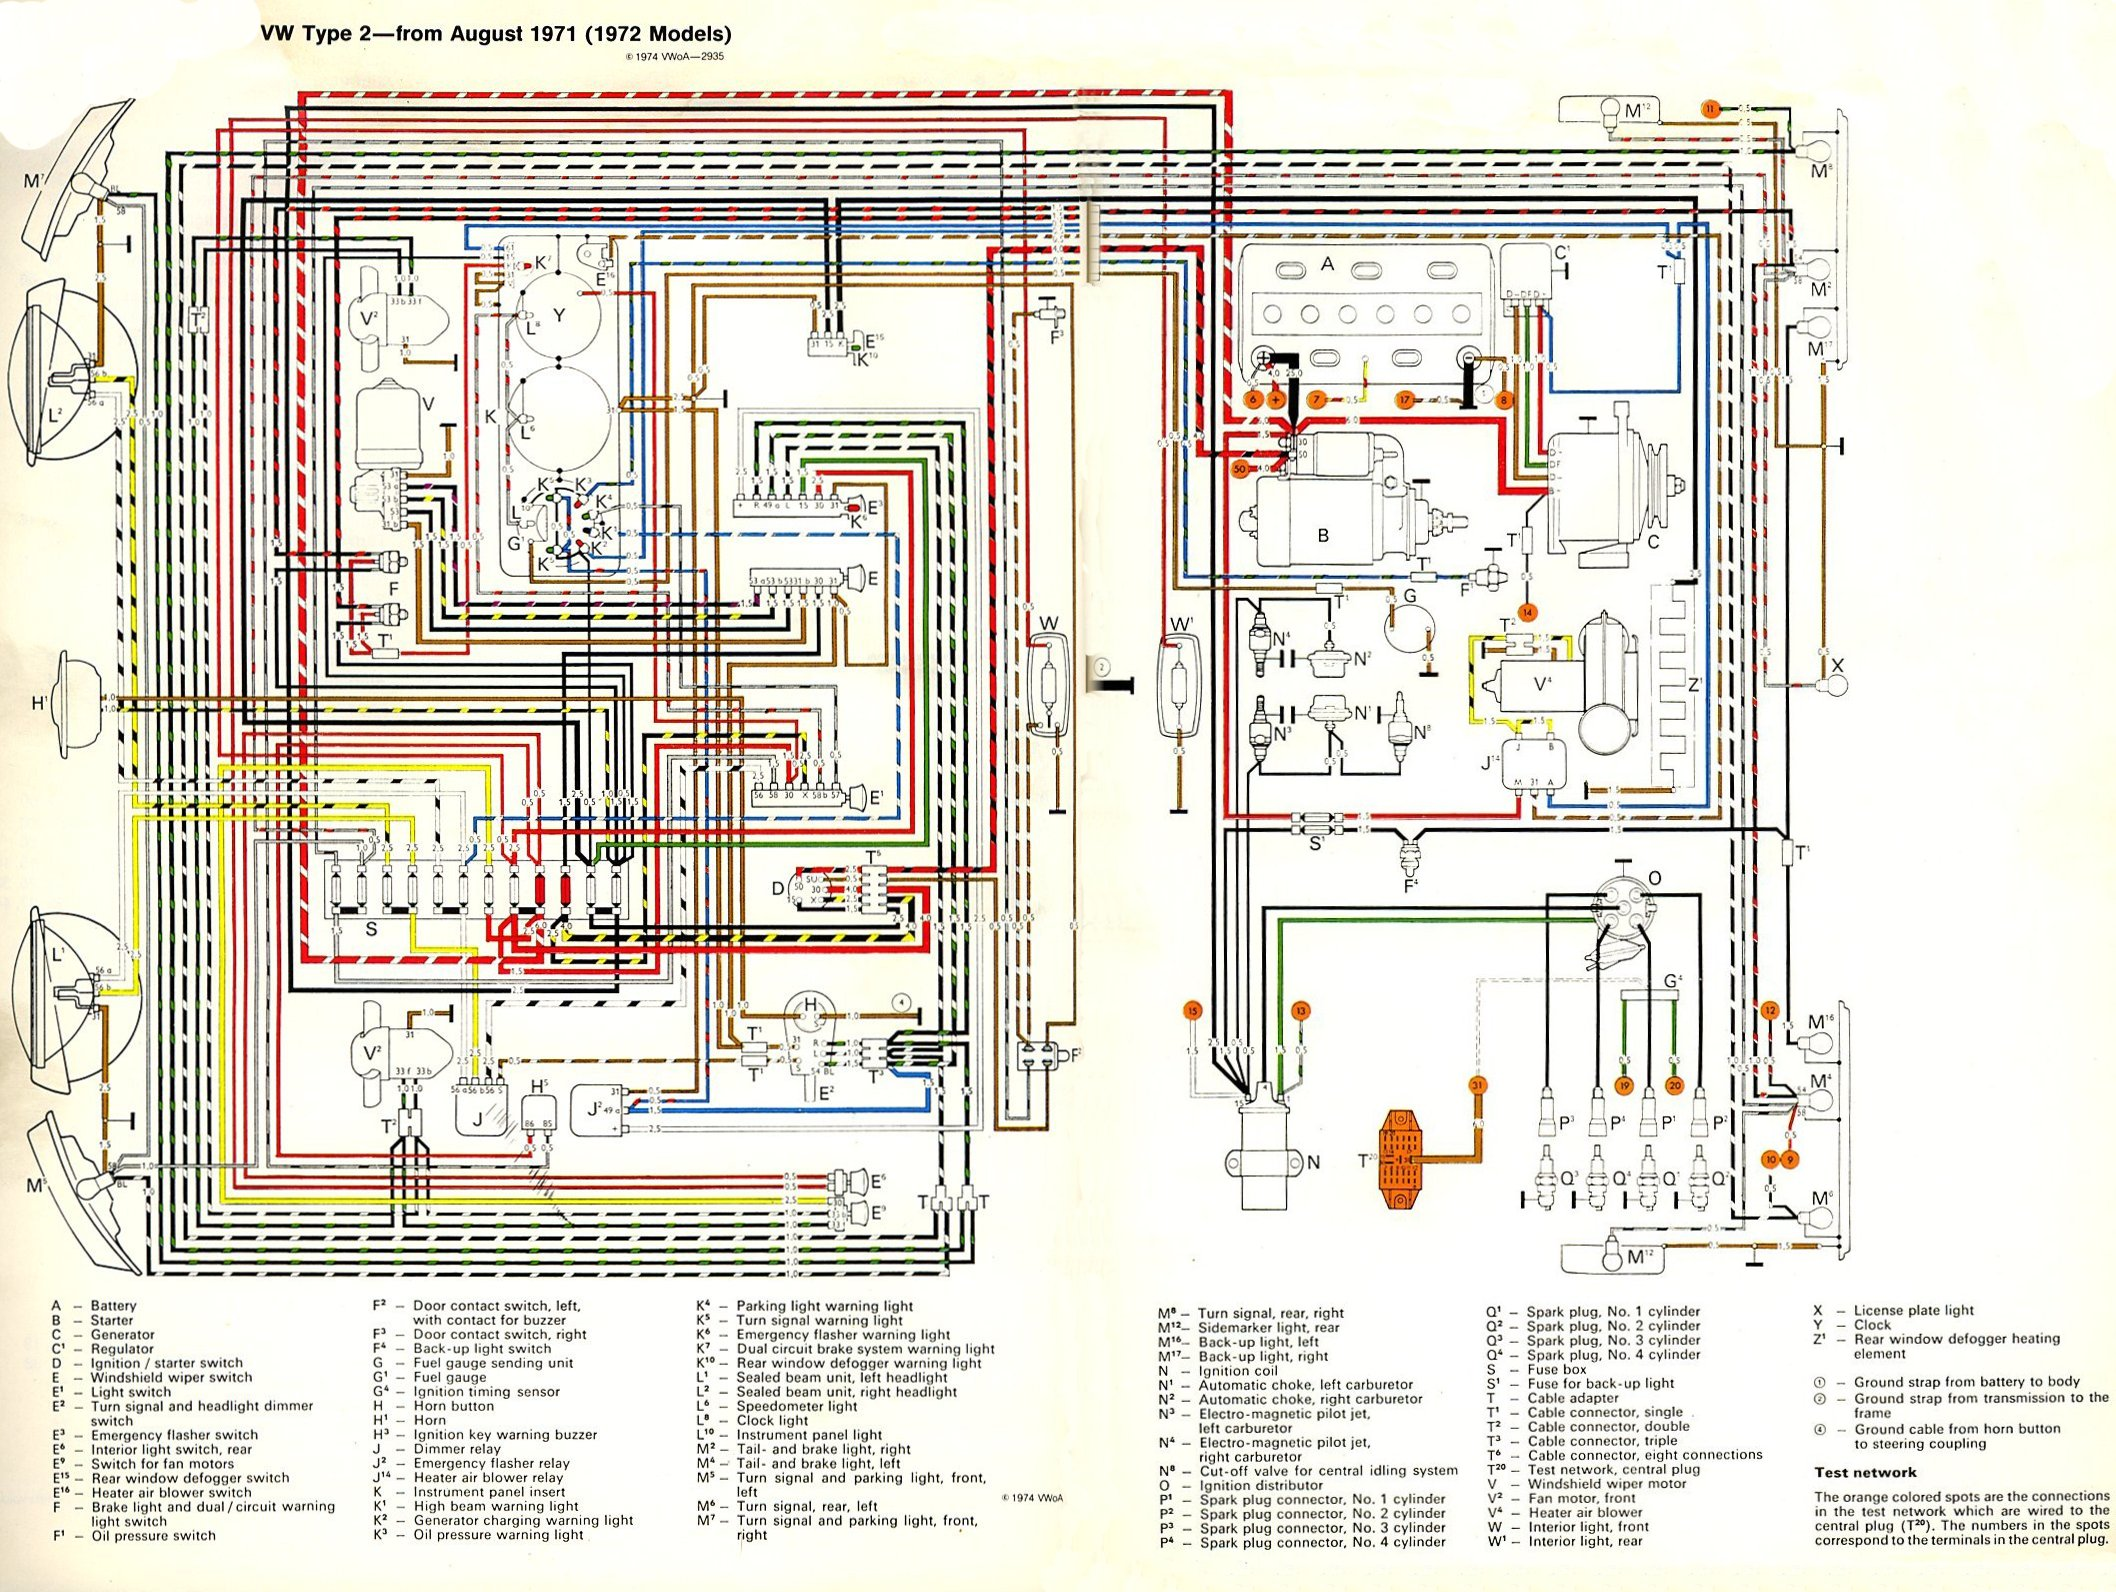 bus_1972_wiring bus_1972_wiring jpg (2116�1592) wire pinterest kombi camper vw t4 fuse box wiring diagram at arjmand.co